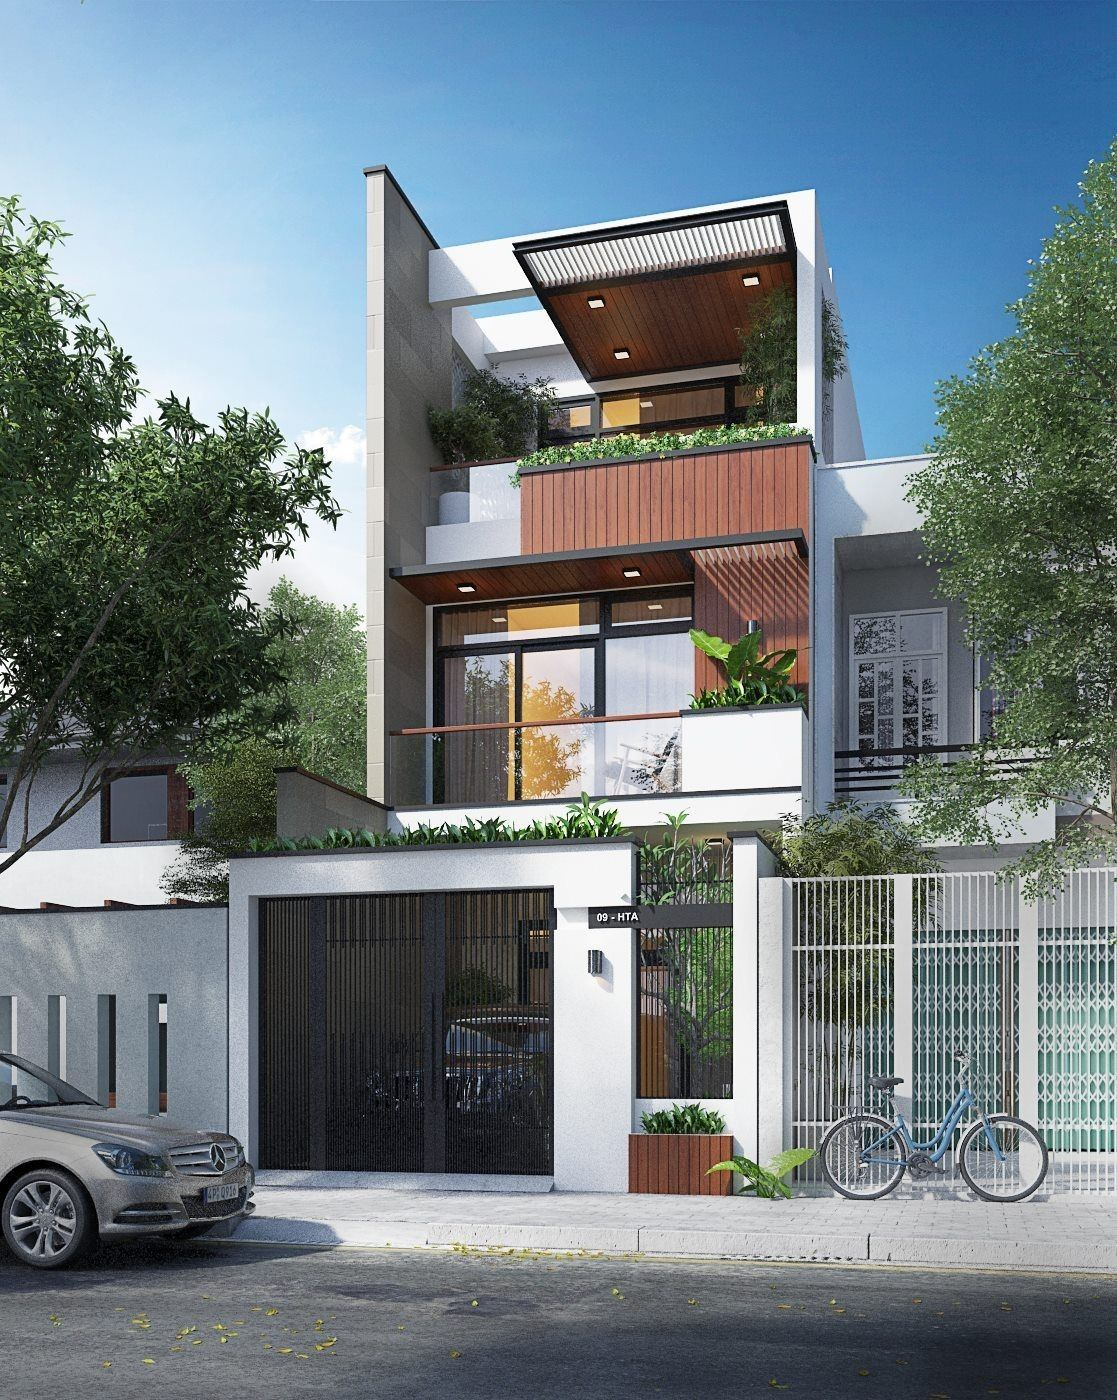 Facade House Small Modern Home Cool House Designs: Small House Design, Modern House Design, Facade House